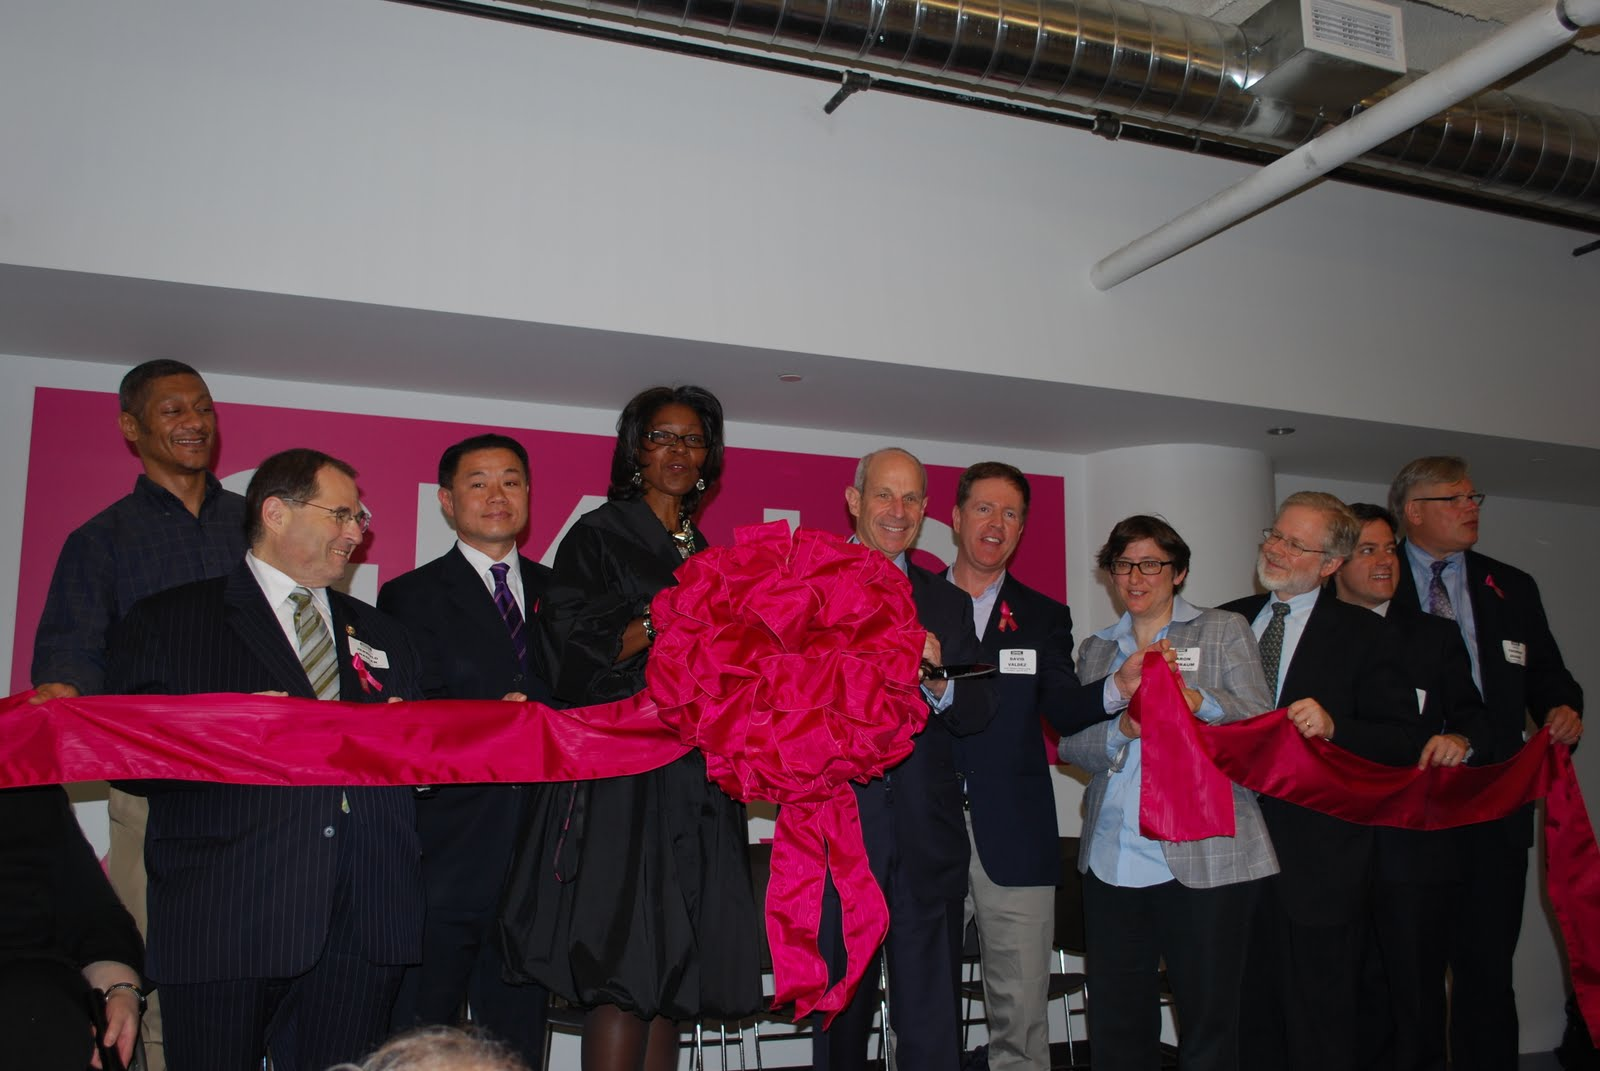 by Paul Schindler, Gay City News In a celebratory ribbon-cutting ceremony ...